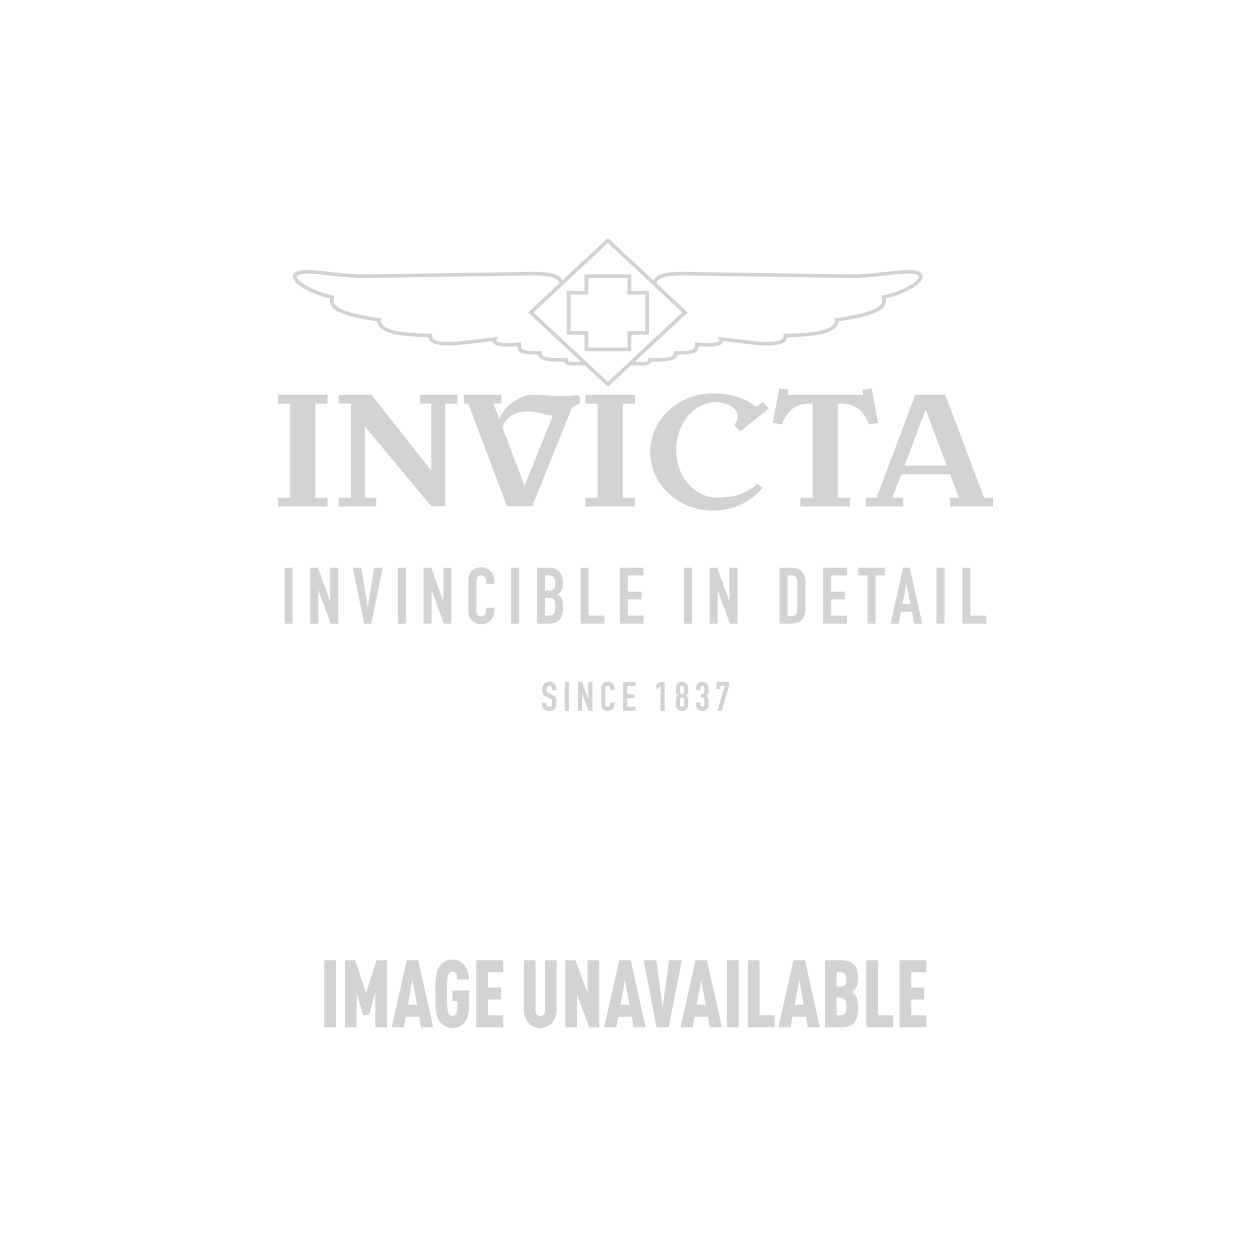 Invicta Excursion Swiss Made Quartz Watch - Black, Stainless Steel case with Steel, Black tone Stainless Steel band - Model 20142